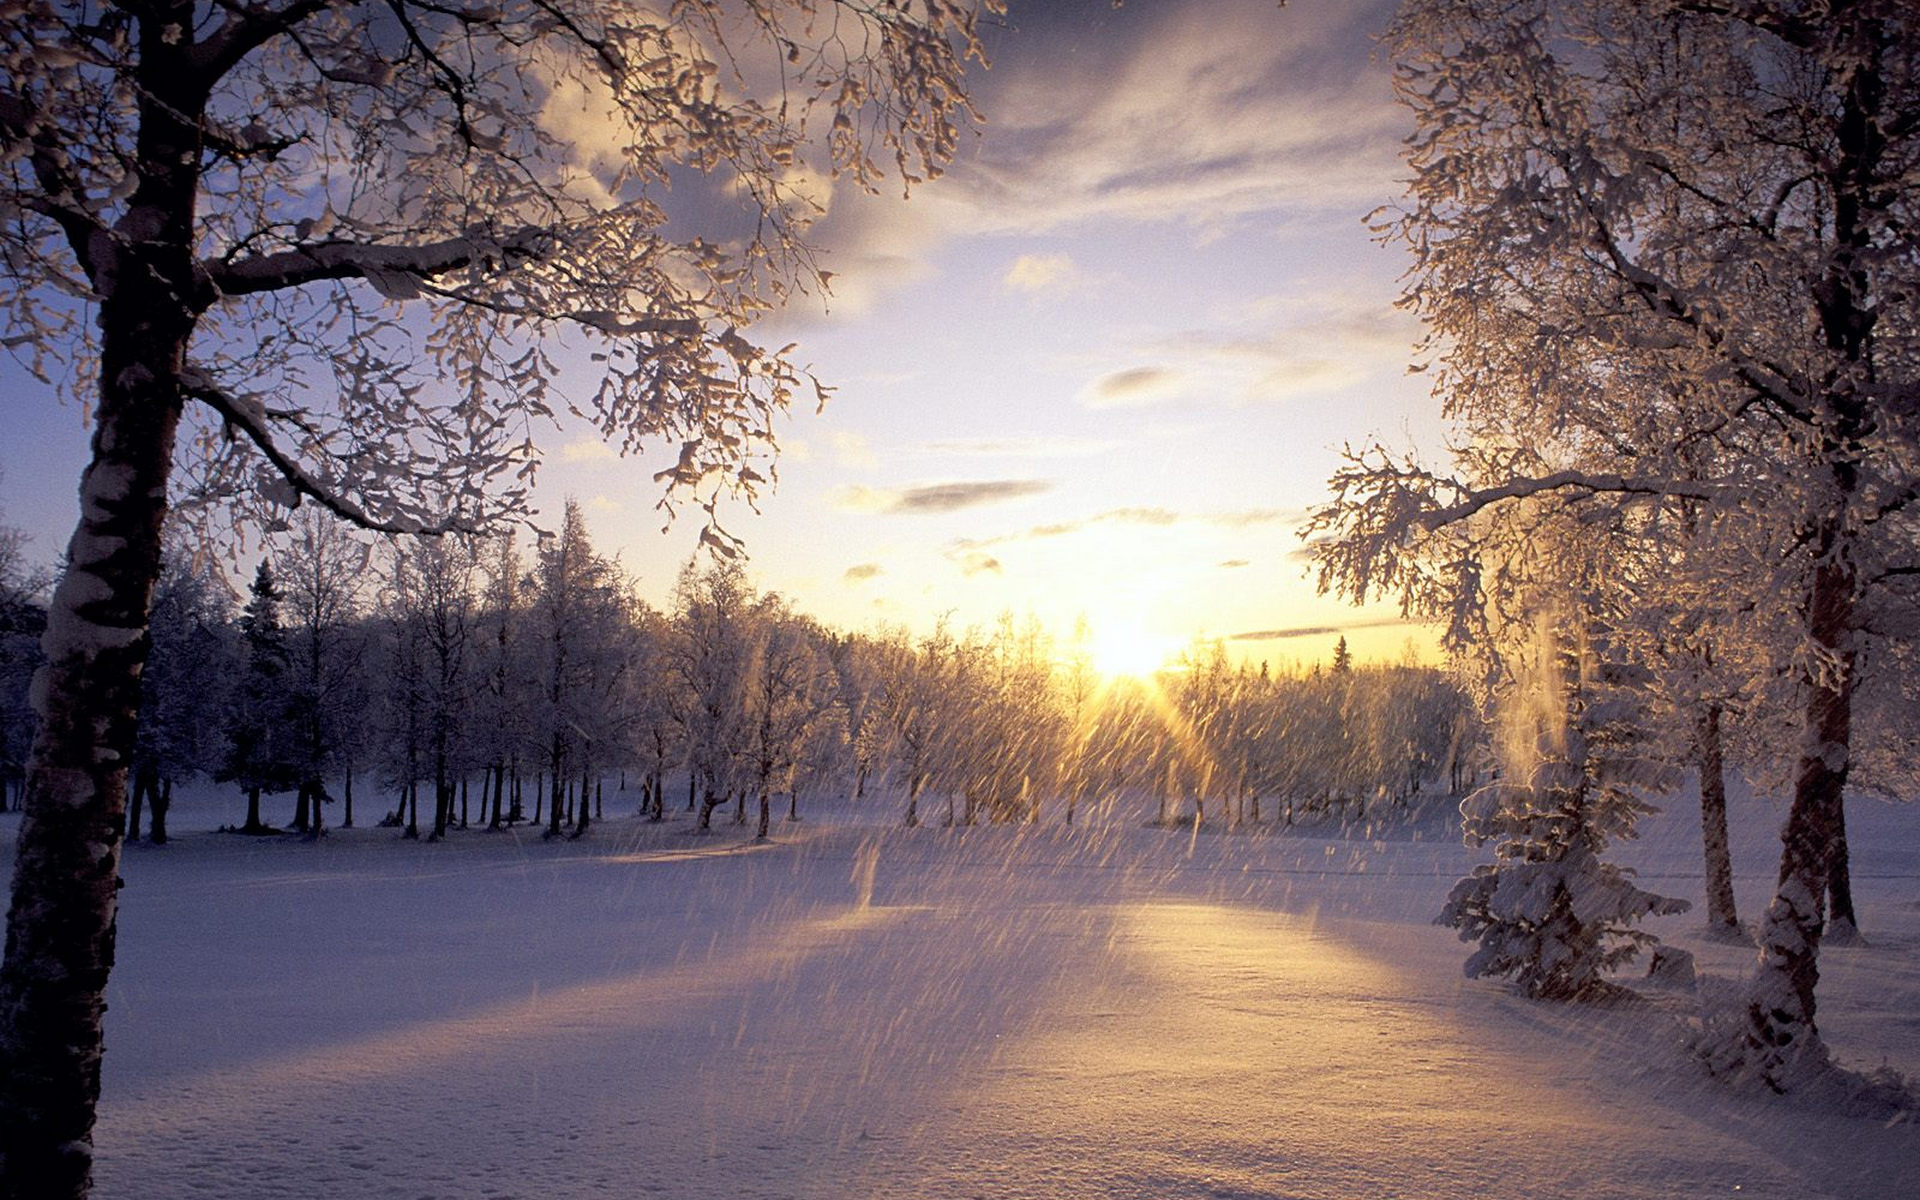 Snow Falling Wallpaper For Ipad A Heavy Snow Is Falling No Man Is Out Sunlight Can Soon